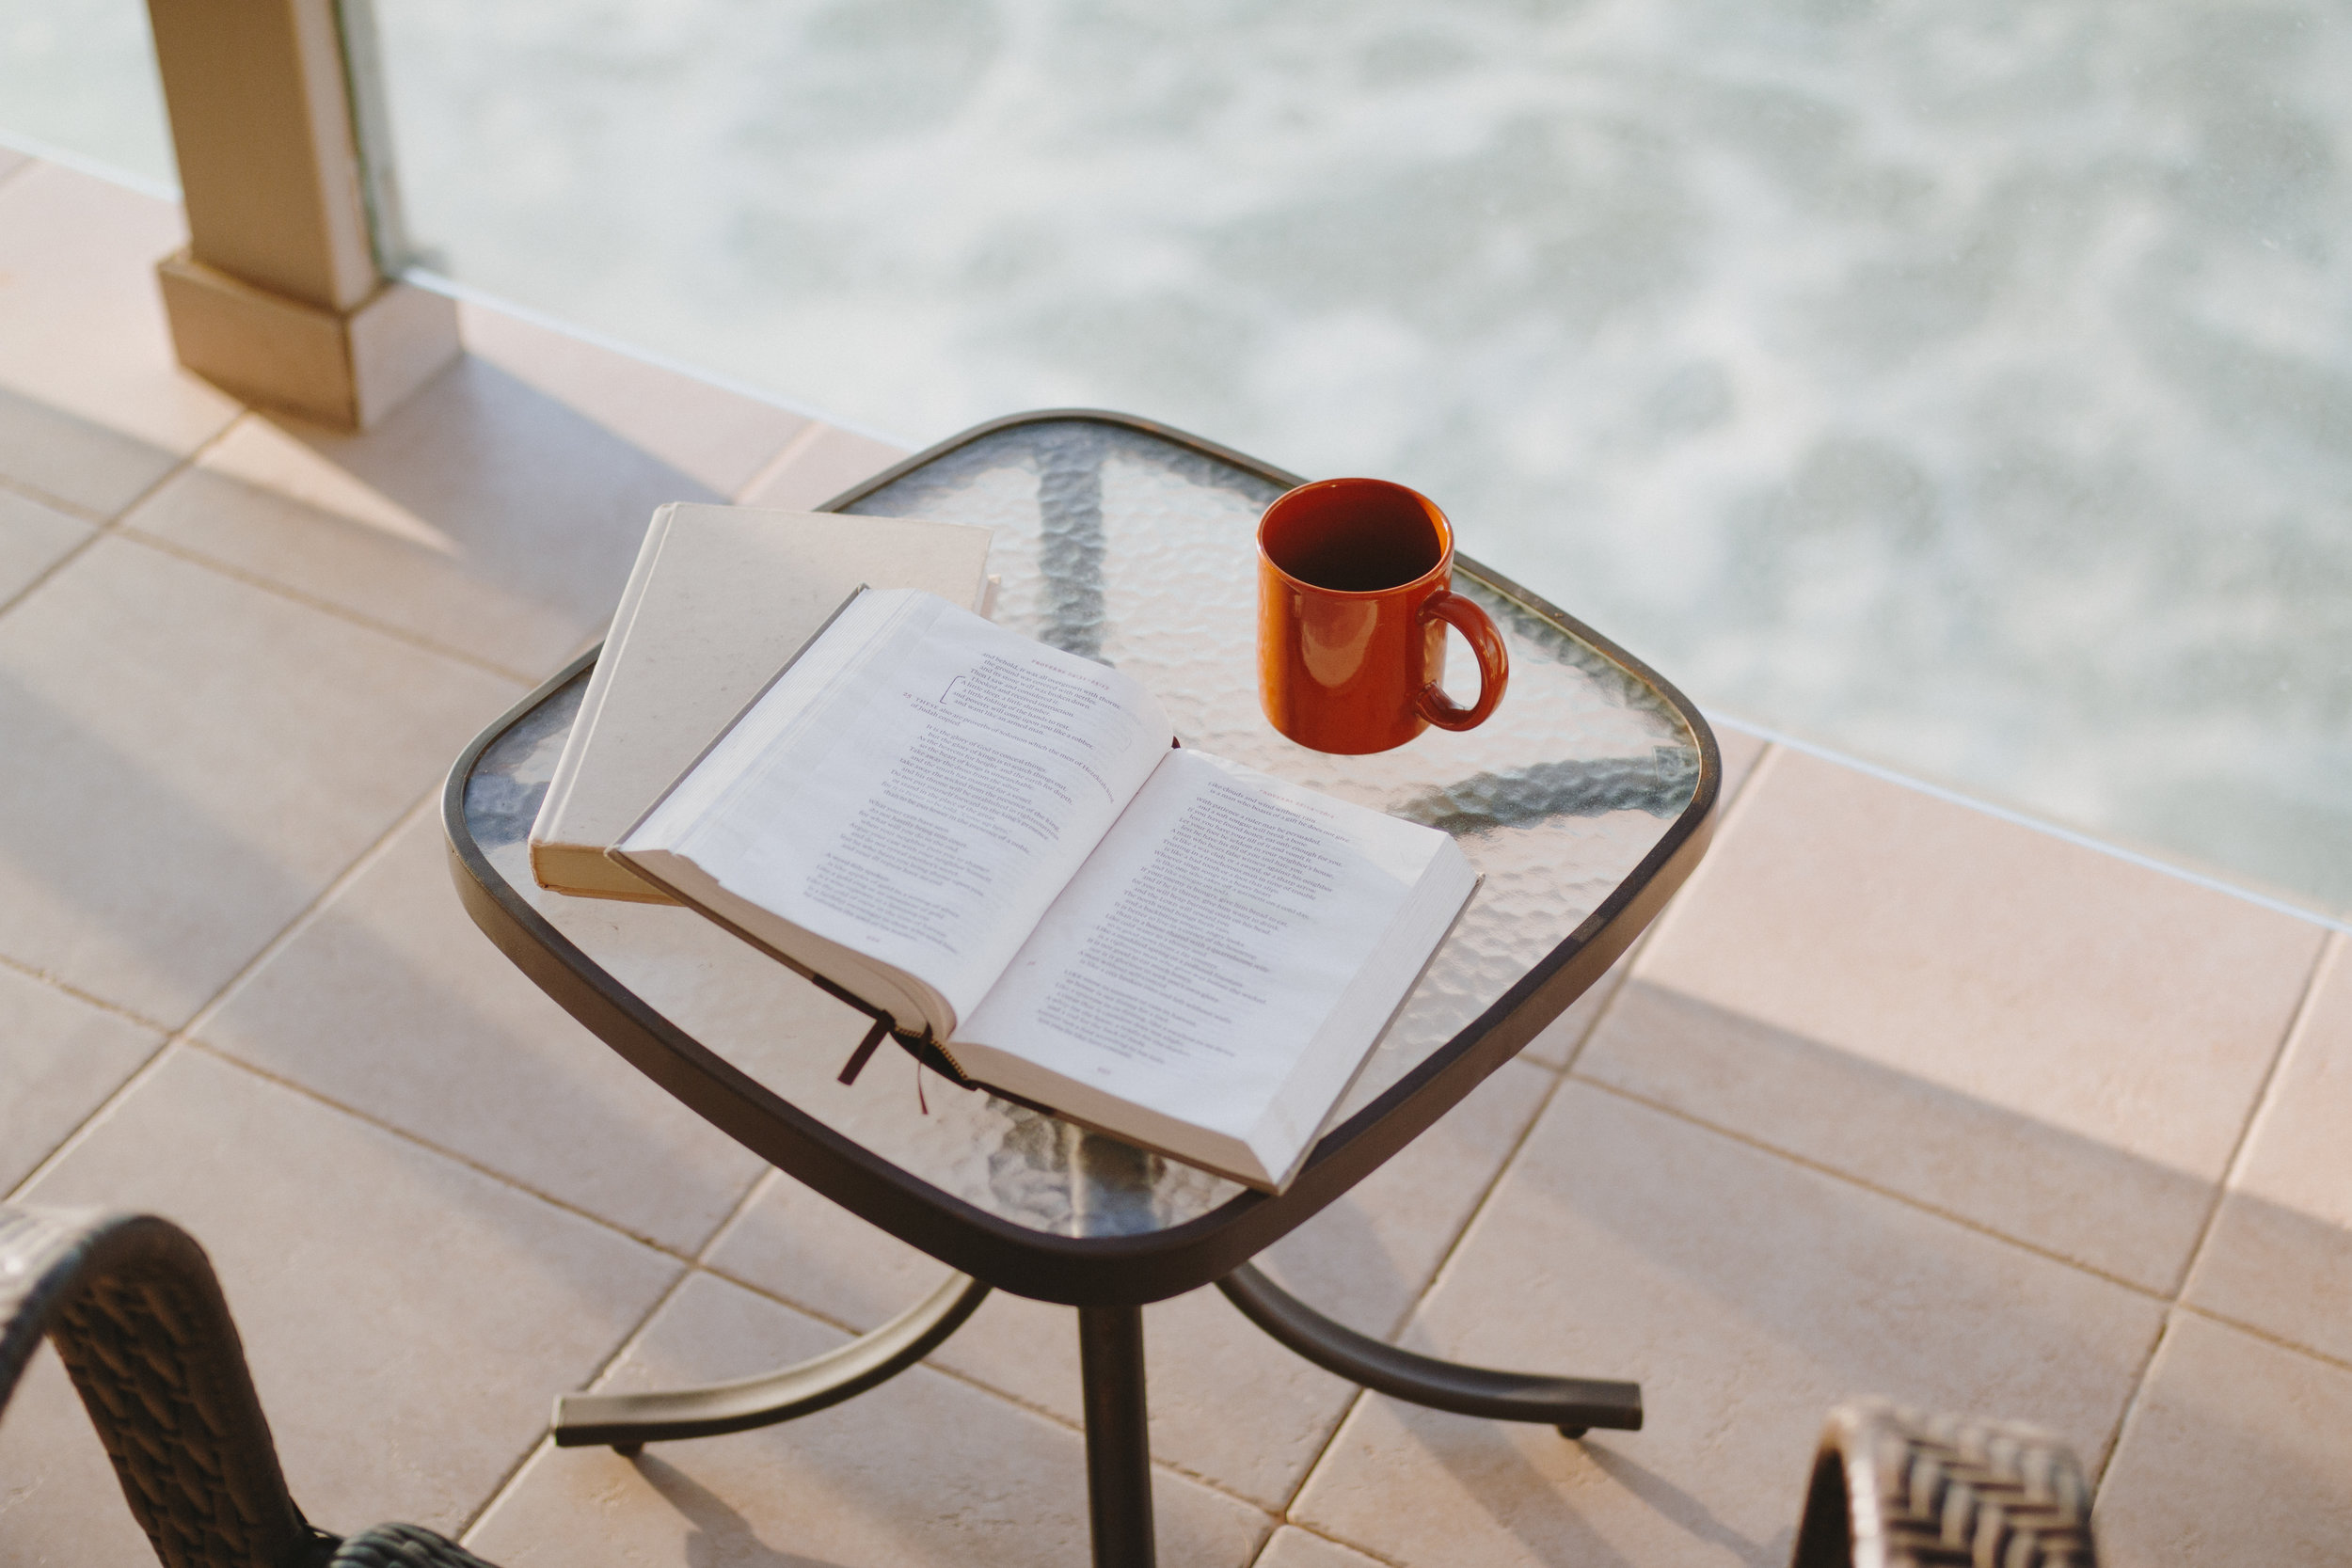 devotions - Encouragement through the Word of God.